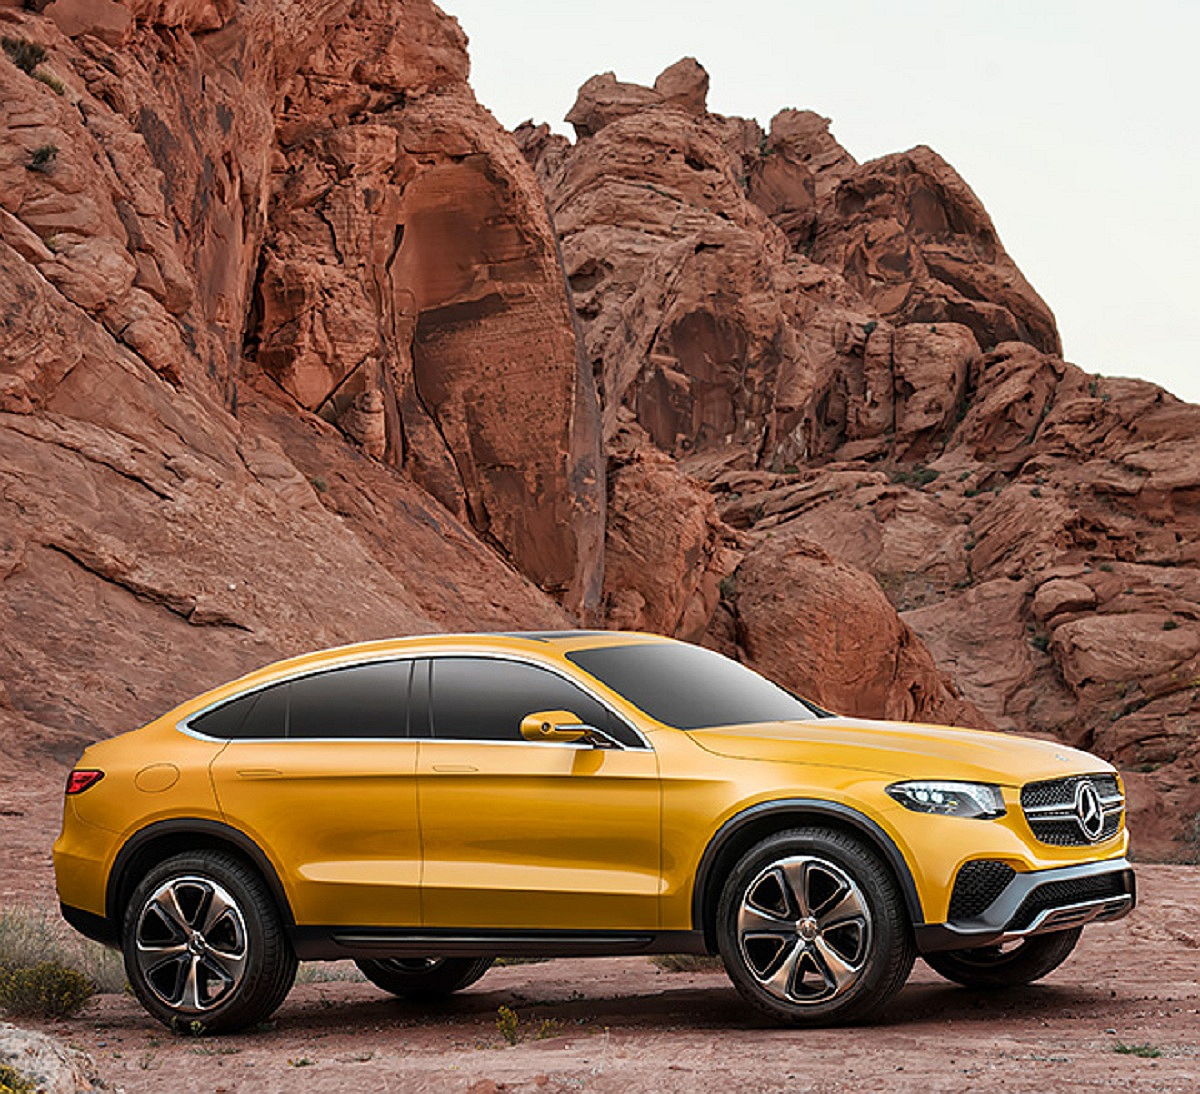 2019 Mercedes Benz Glc Coupe Camshaft: M-Benz公佈GLC Coupe官方「間諜」影片